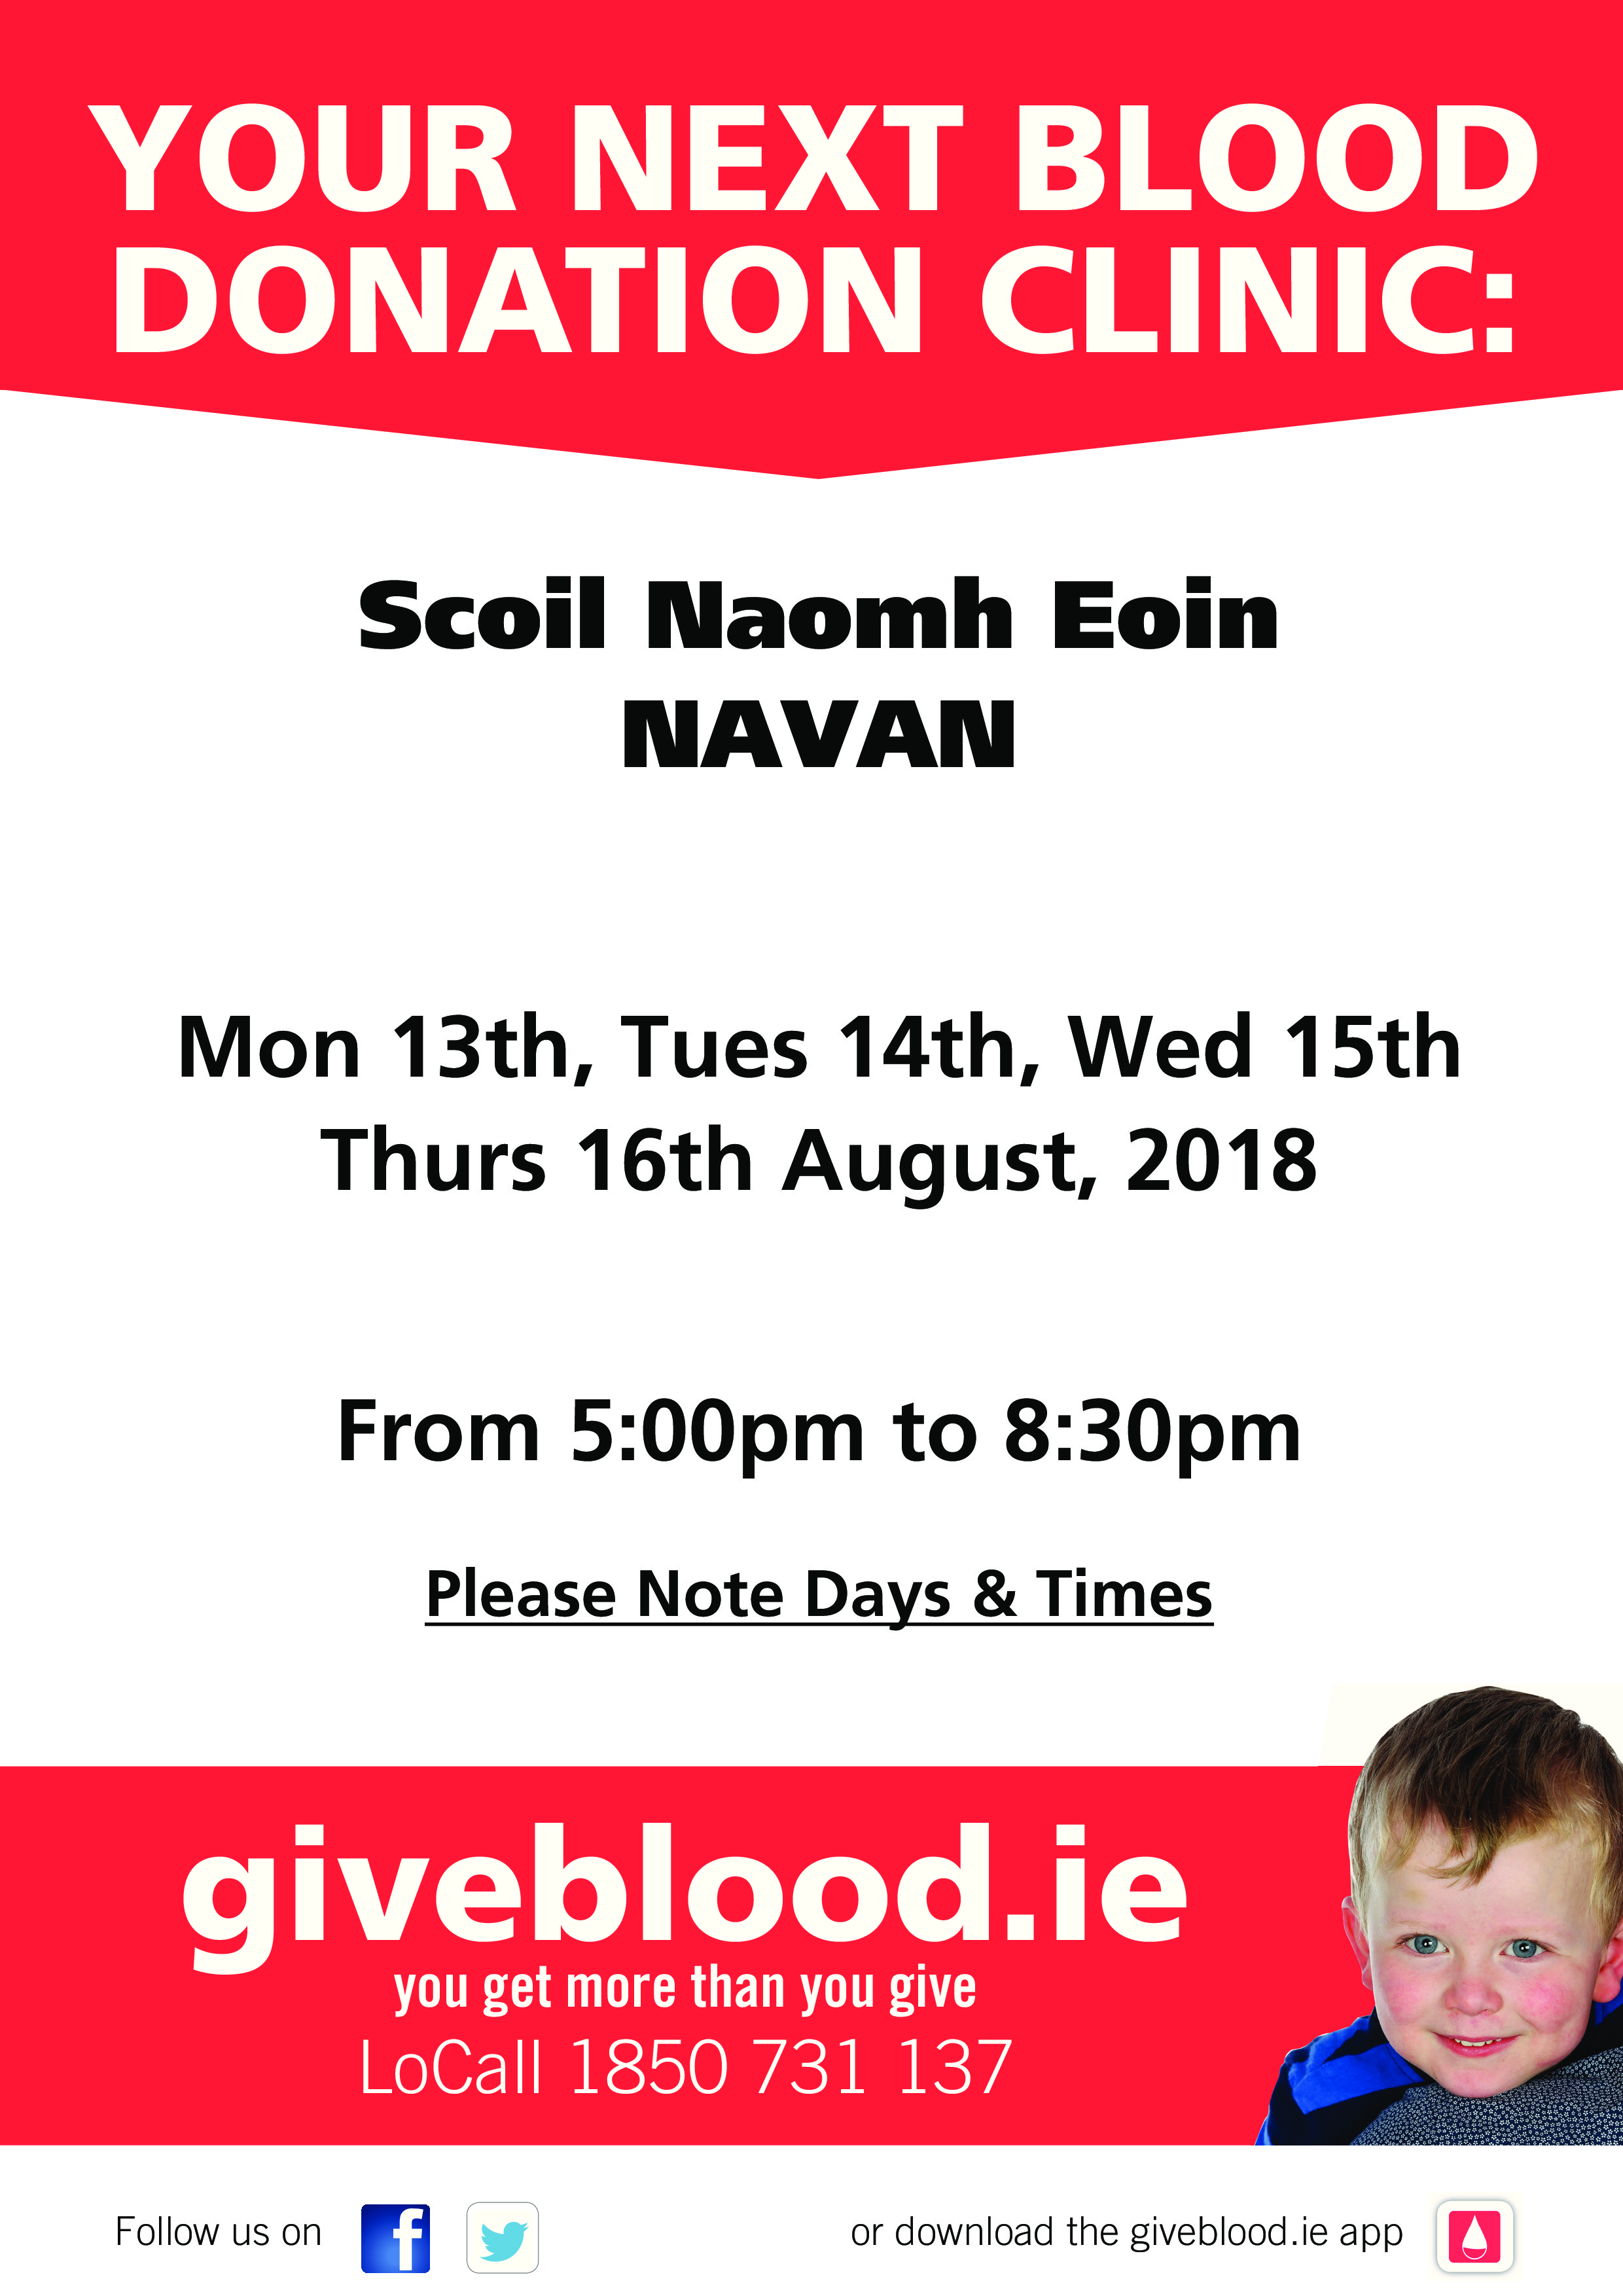 Reminder to Blood Donors in the Navan Area